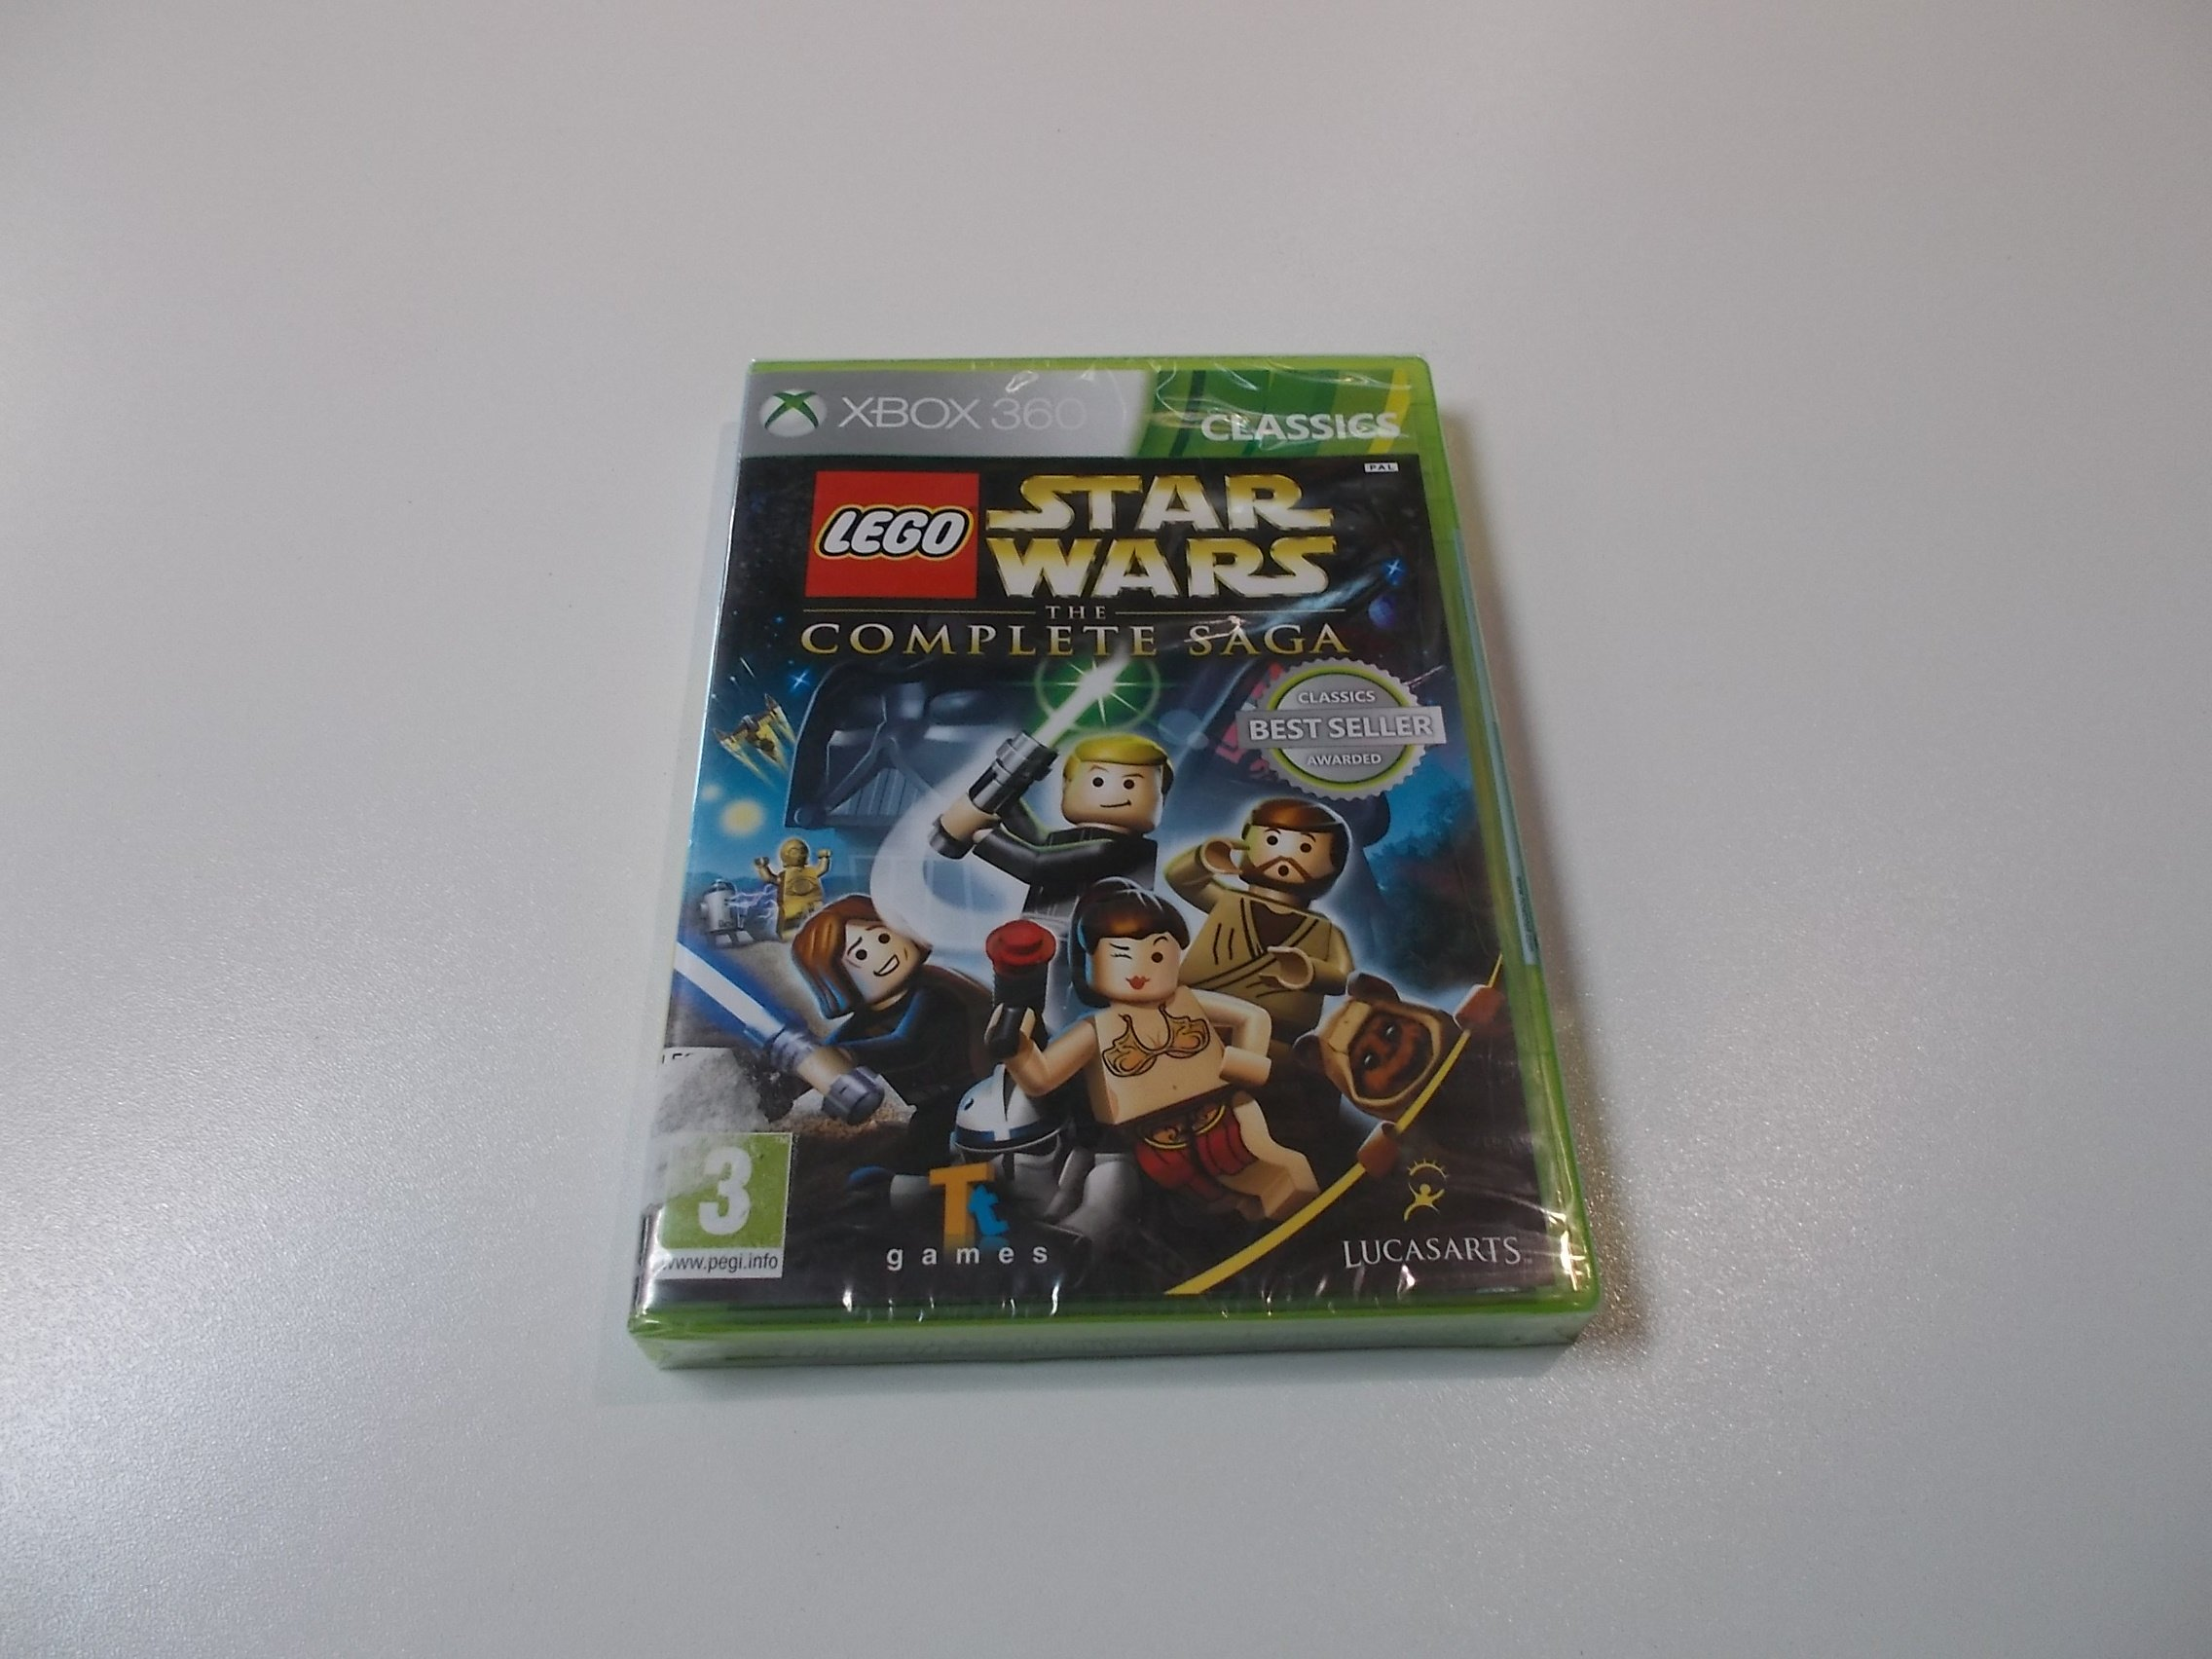 LEGO Star Wars The Complete Saga - GRA Xbox 360 - Opole 0418